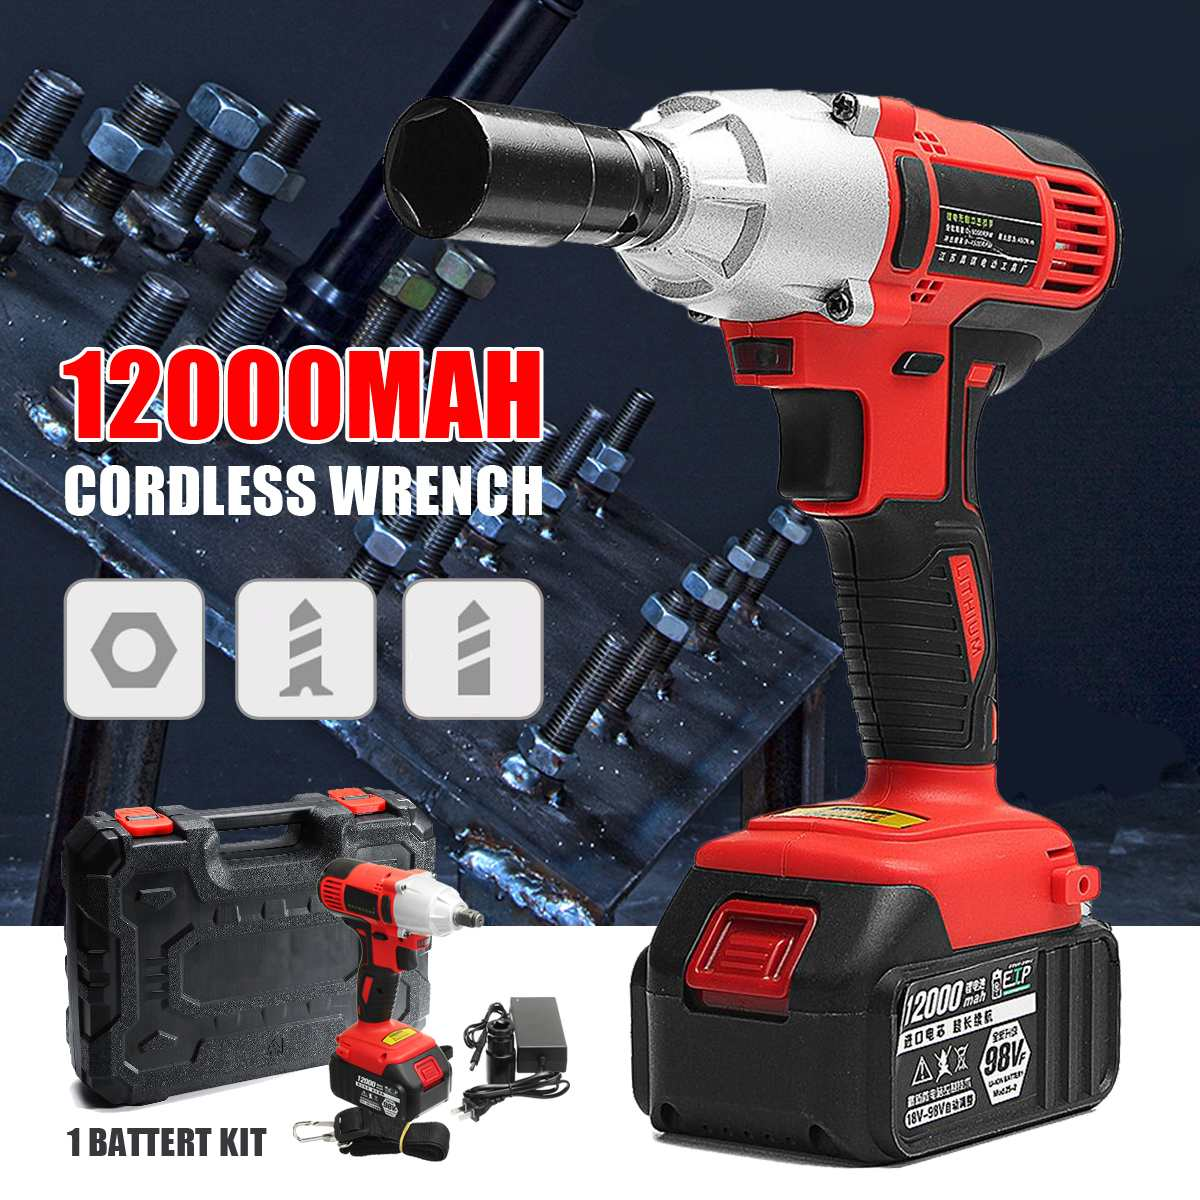 Electric Wrench 98V Lithium-Ion Cordless Impact Wrench Brushless Motor Power Wrench Tools with boxElectric Wrench 98V Lithium-Ion Cordless Impact Wrench Brushless Motor Power Wrench Tools with box